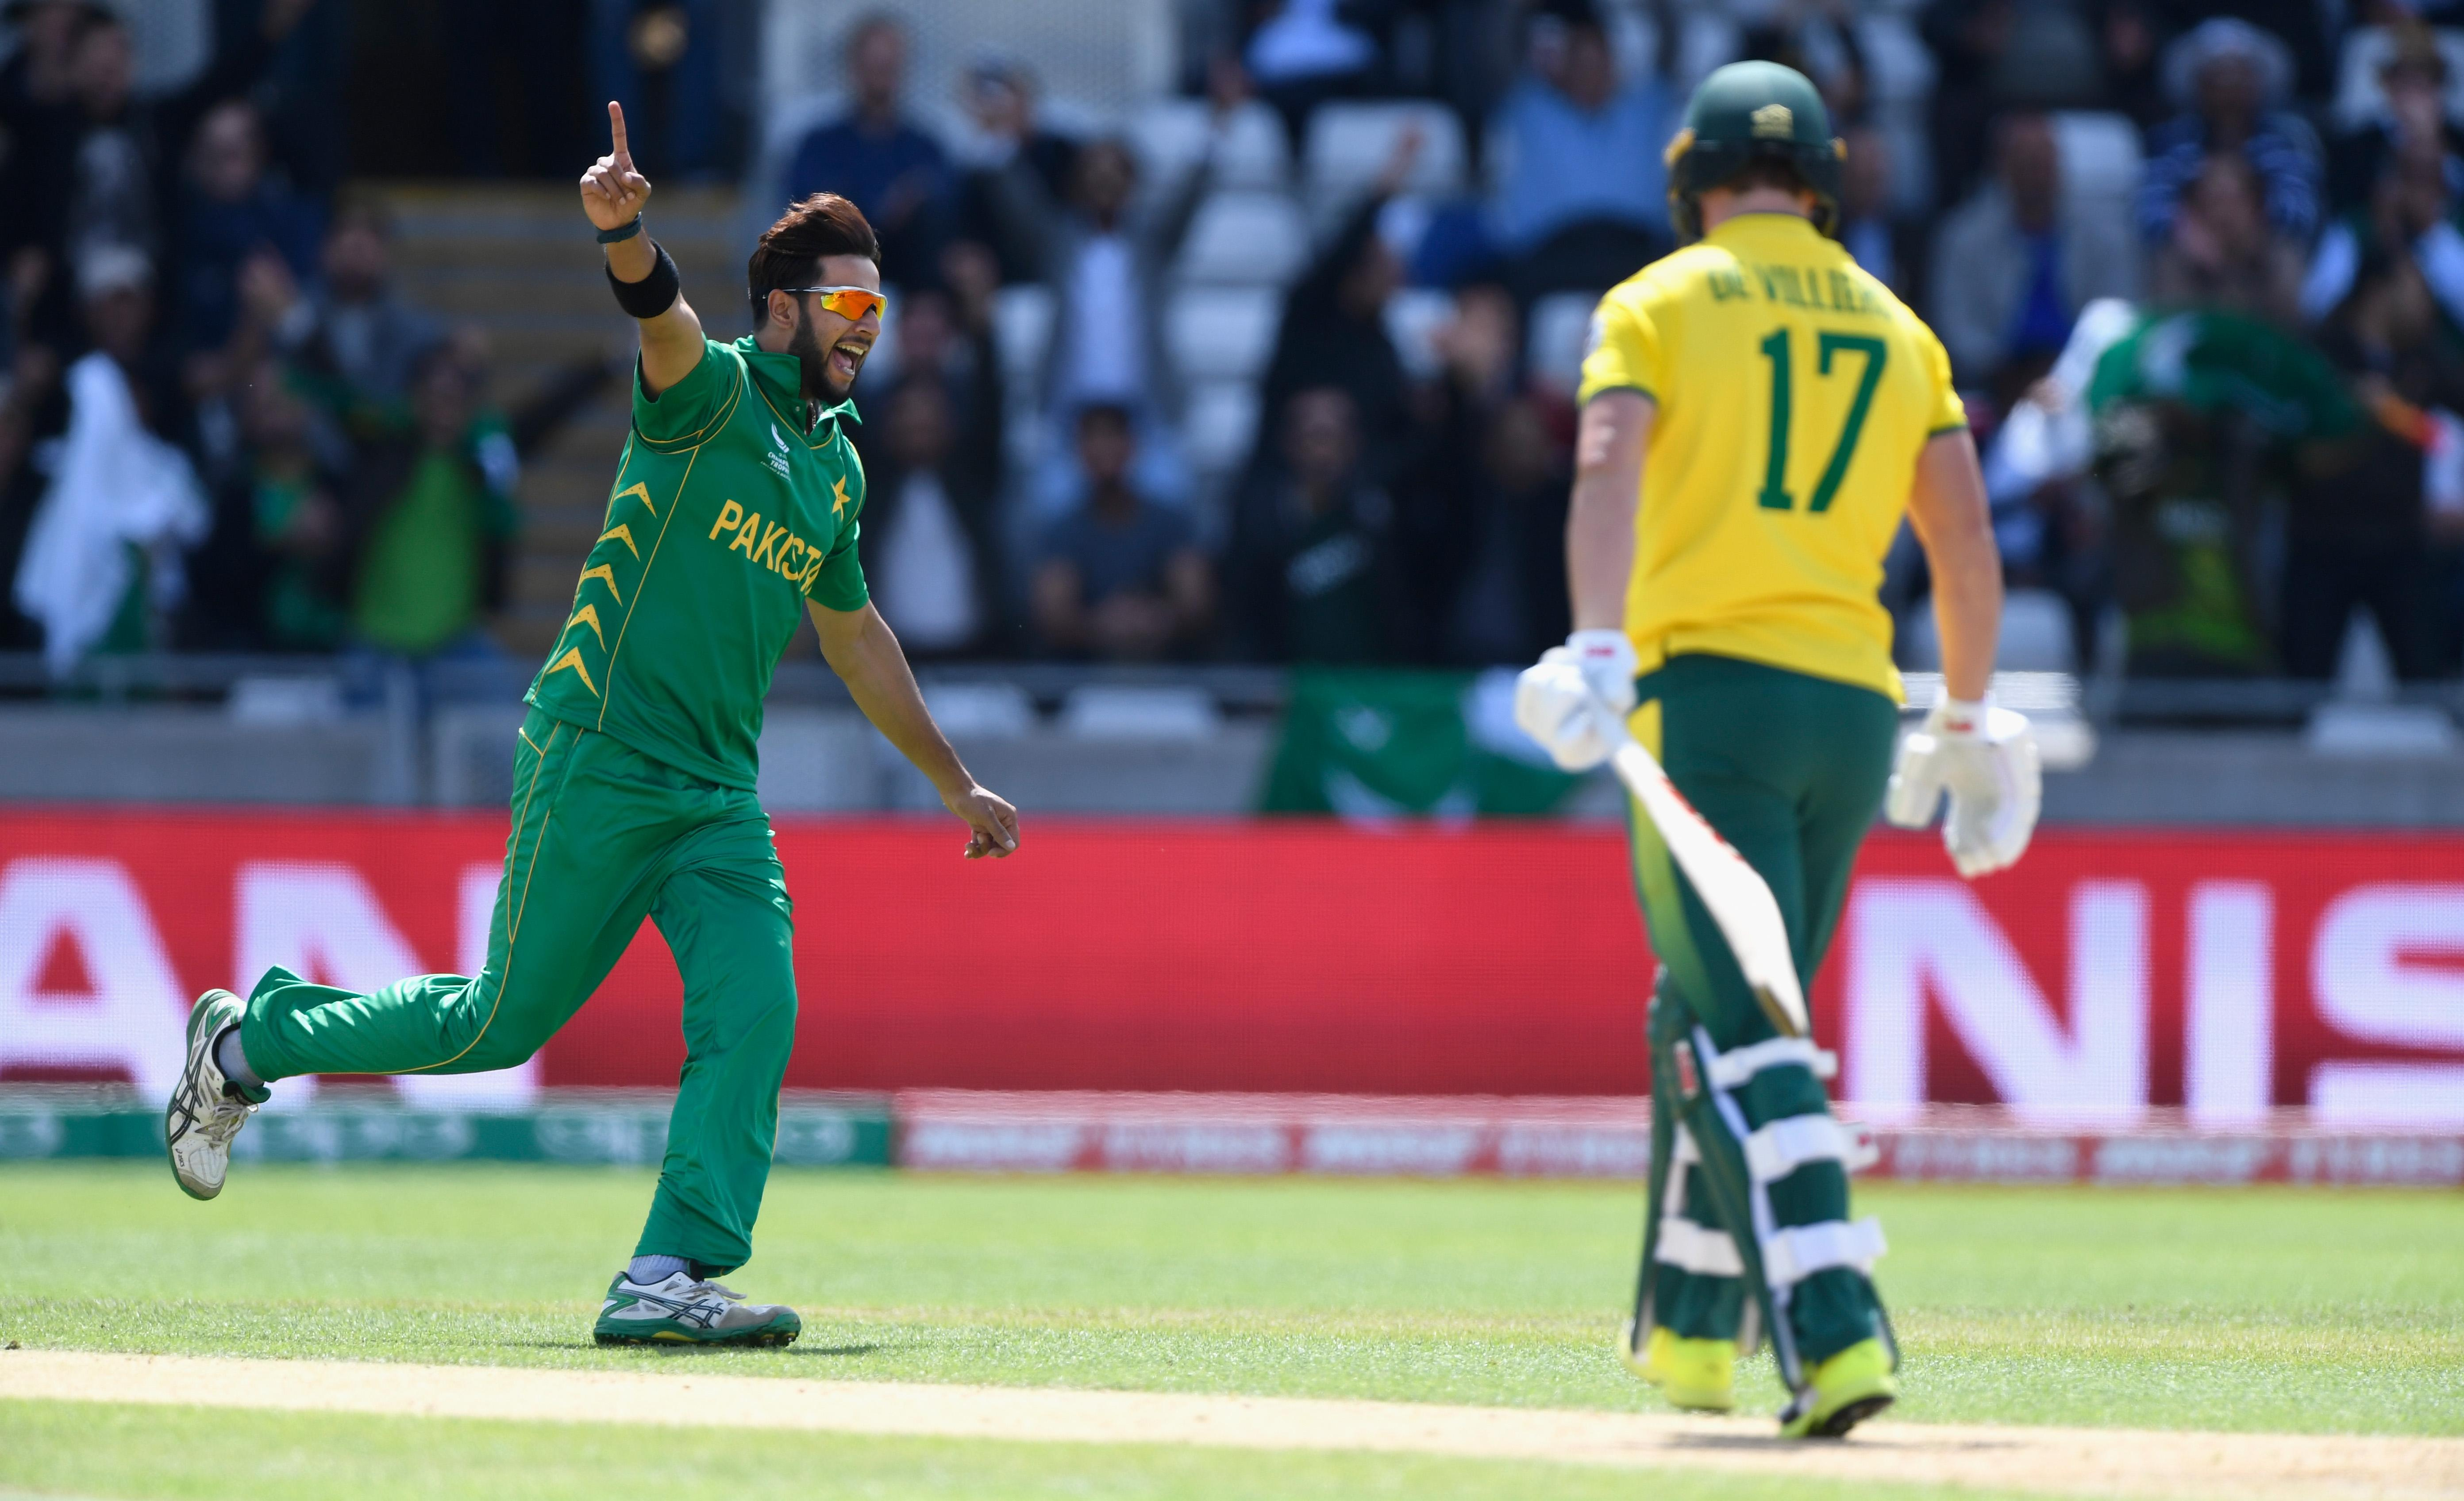 icc-cricket.com - Imran Tahir hands number-one ranking to Imad Wasim